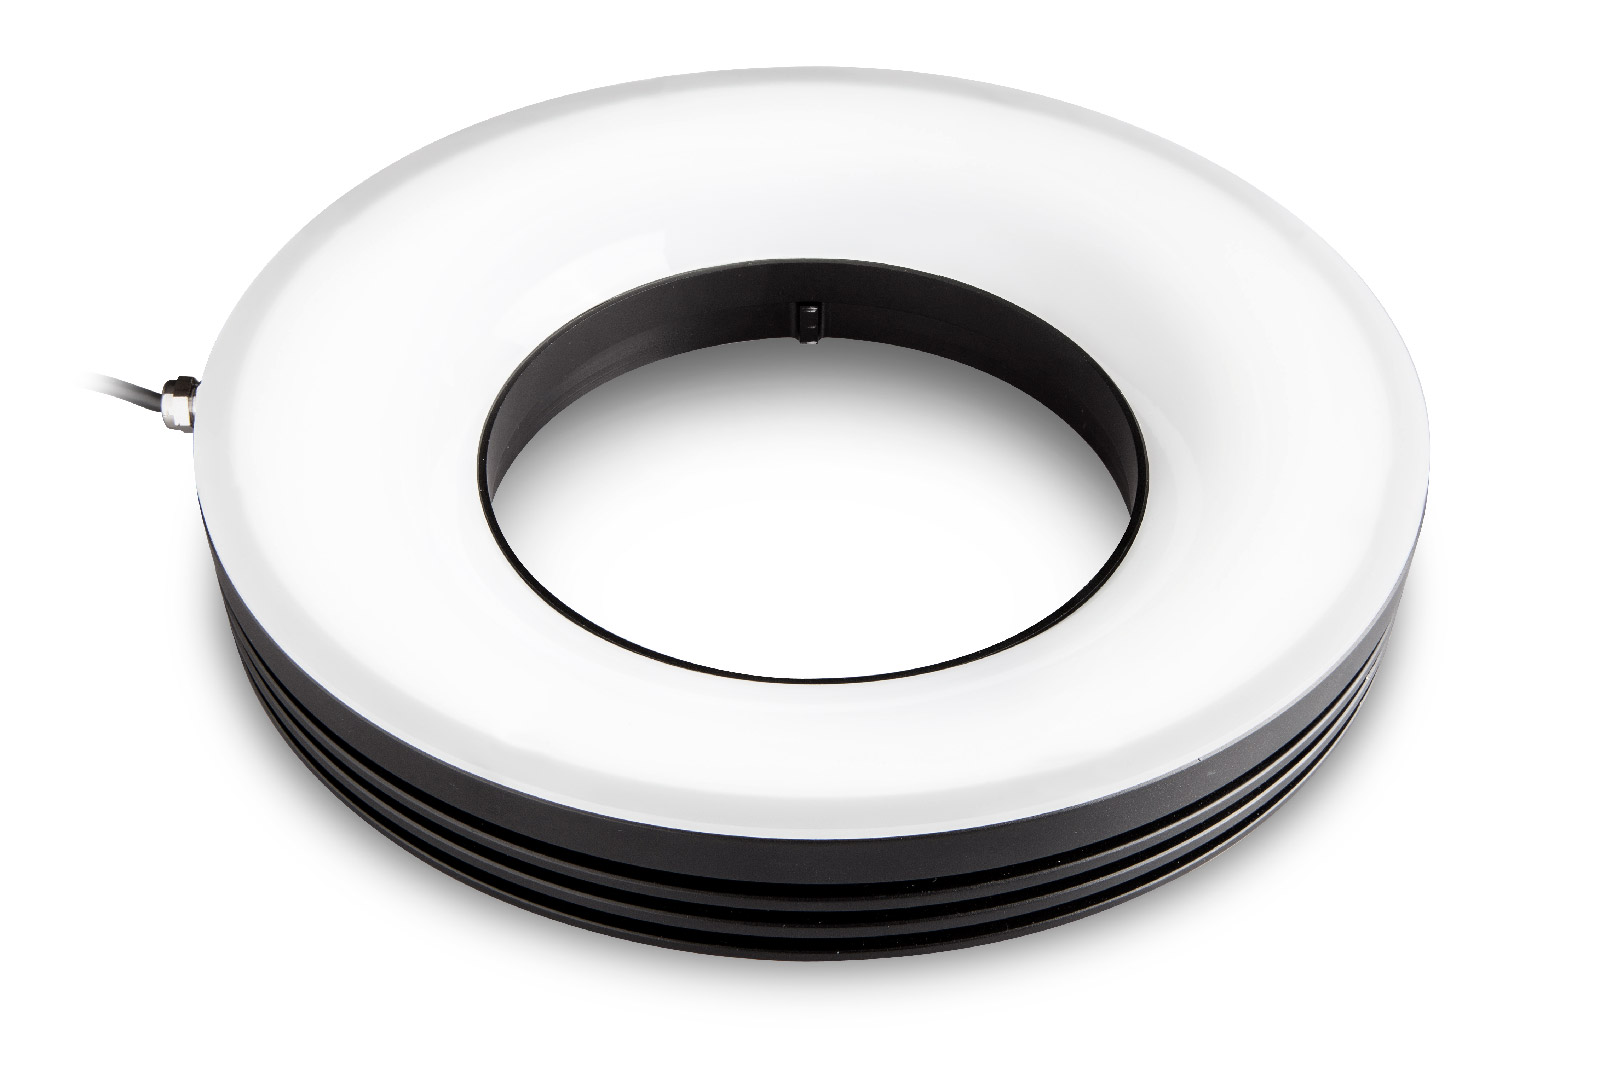 LTRN210W20 Ring LED light, white